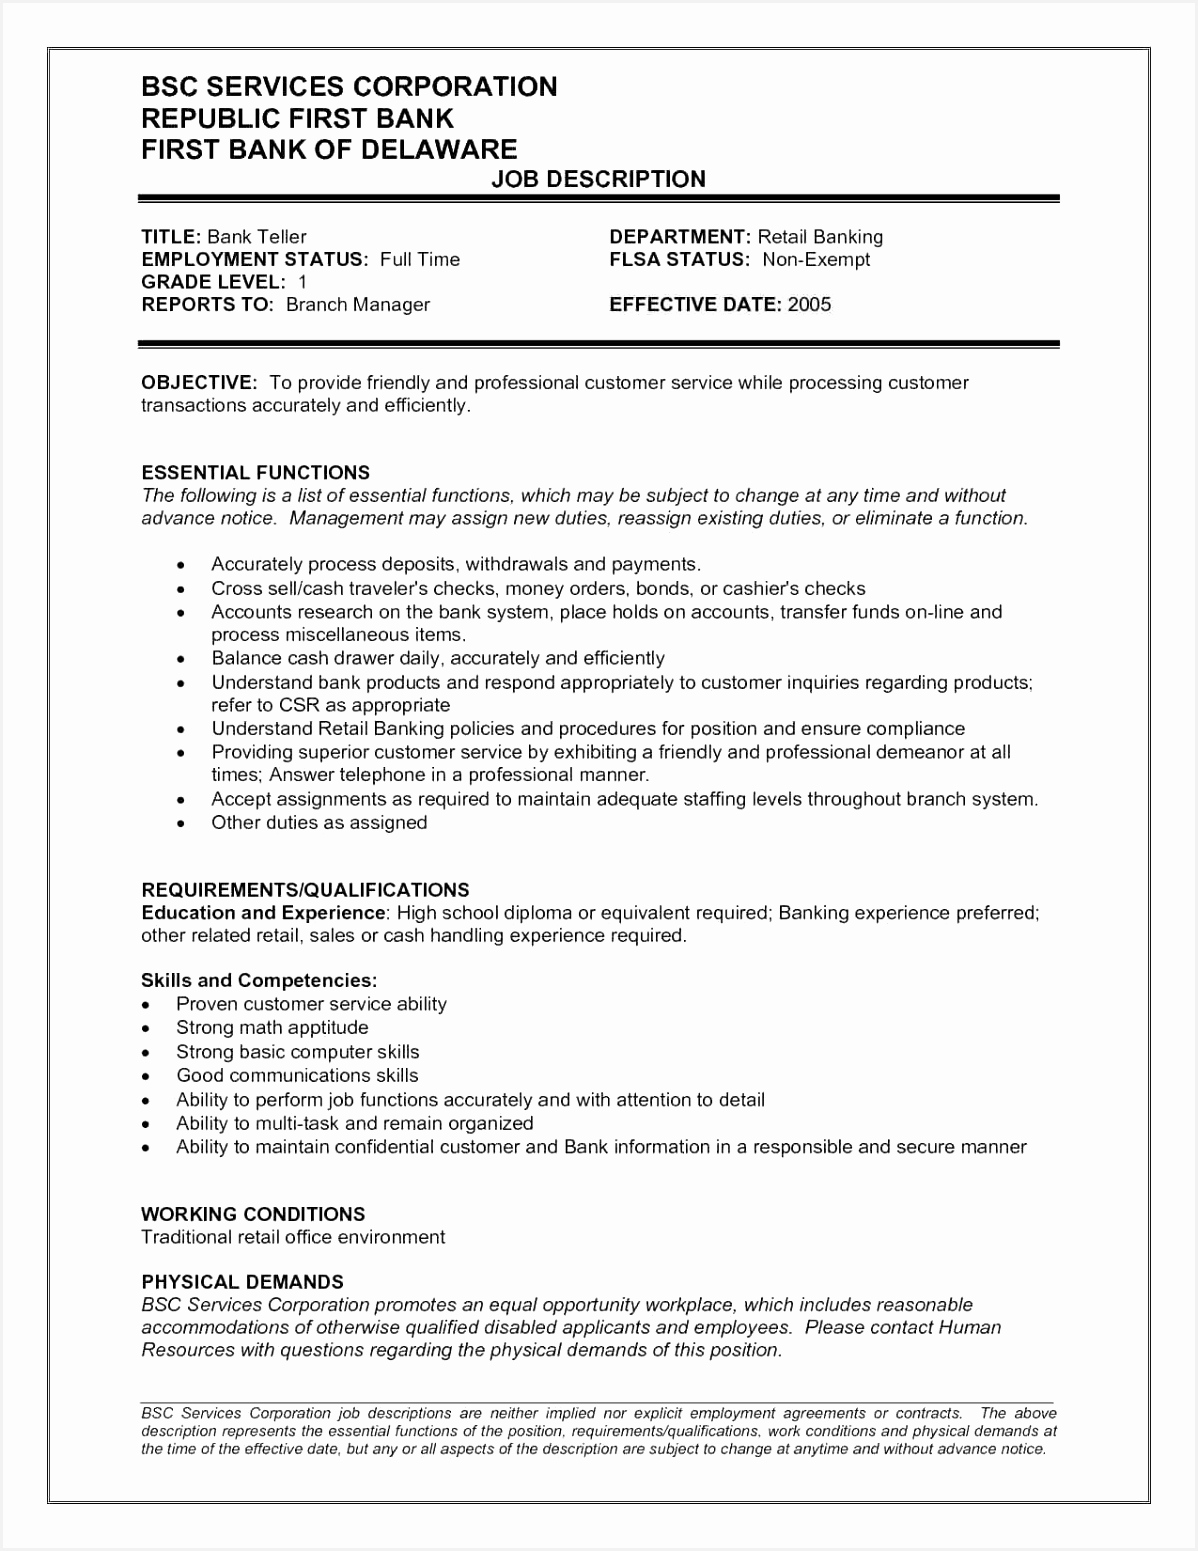 Sample Bank Management Resume Rkbpg Lovely 19 Expensive Management Resume Examples Sierra Of Sample Bank Management Resume Uqcle Beautiful Sample Resume for Experienced Banking Professional Beautiful